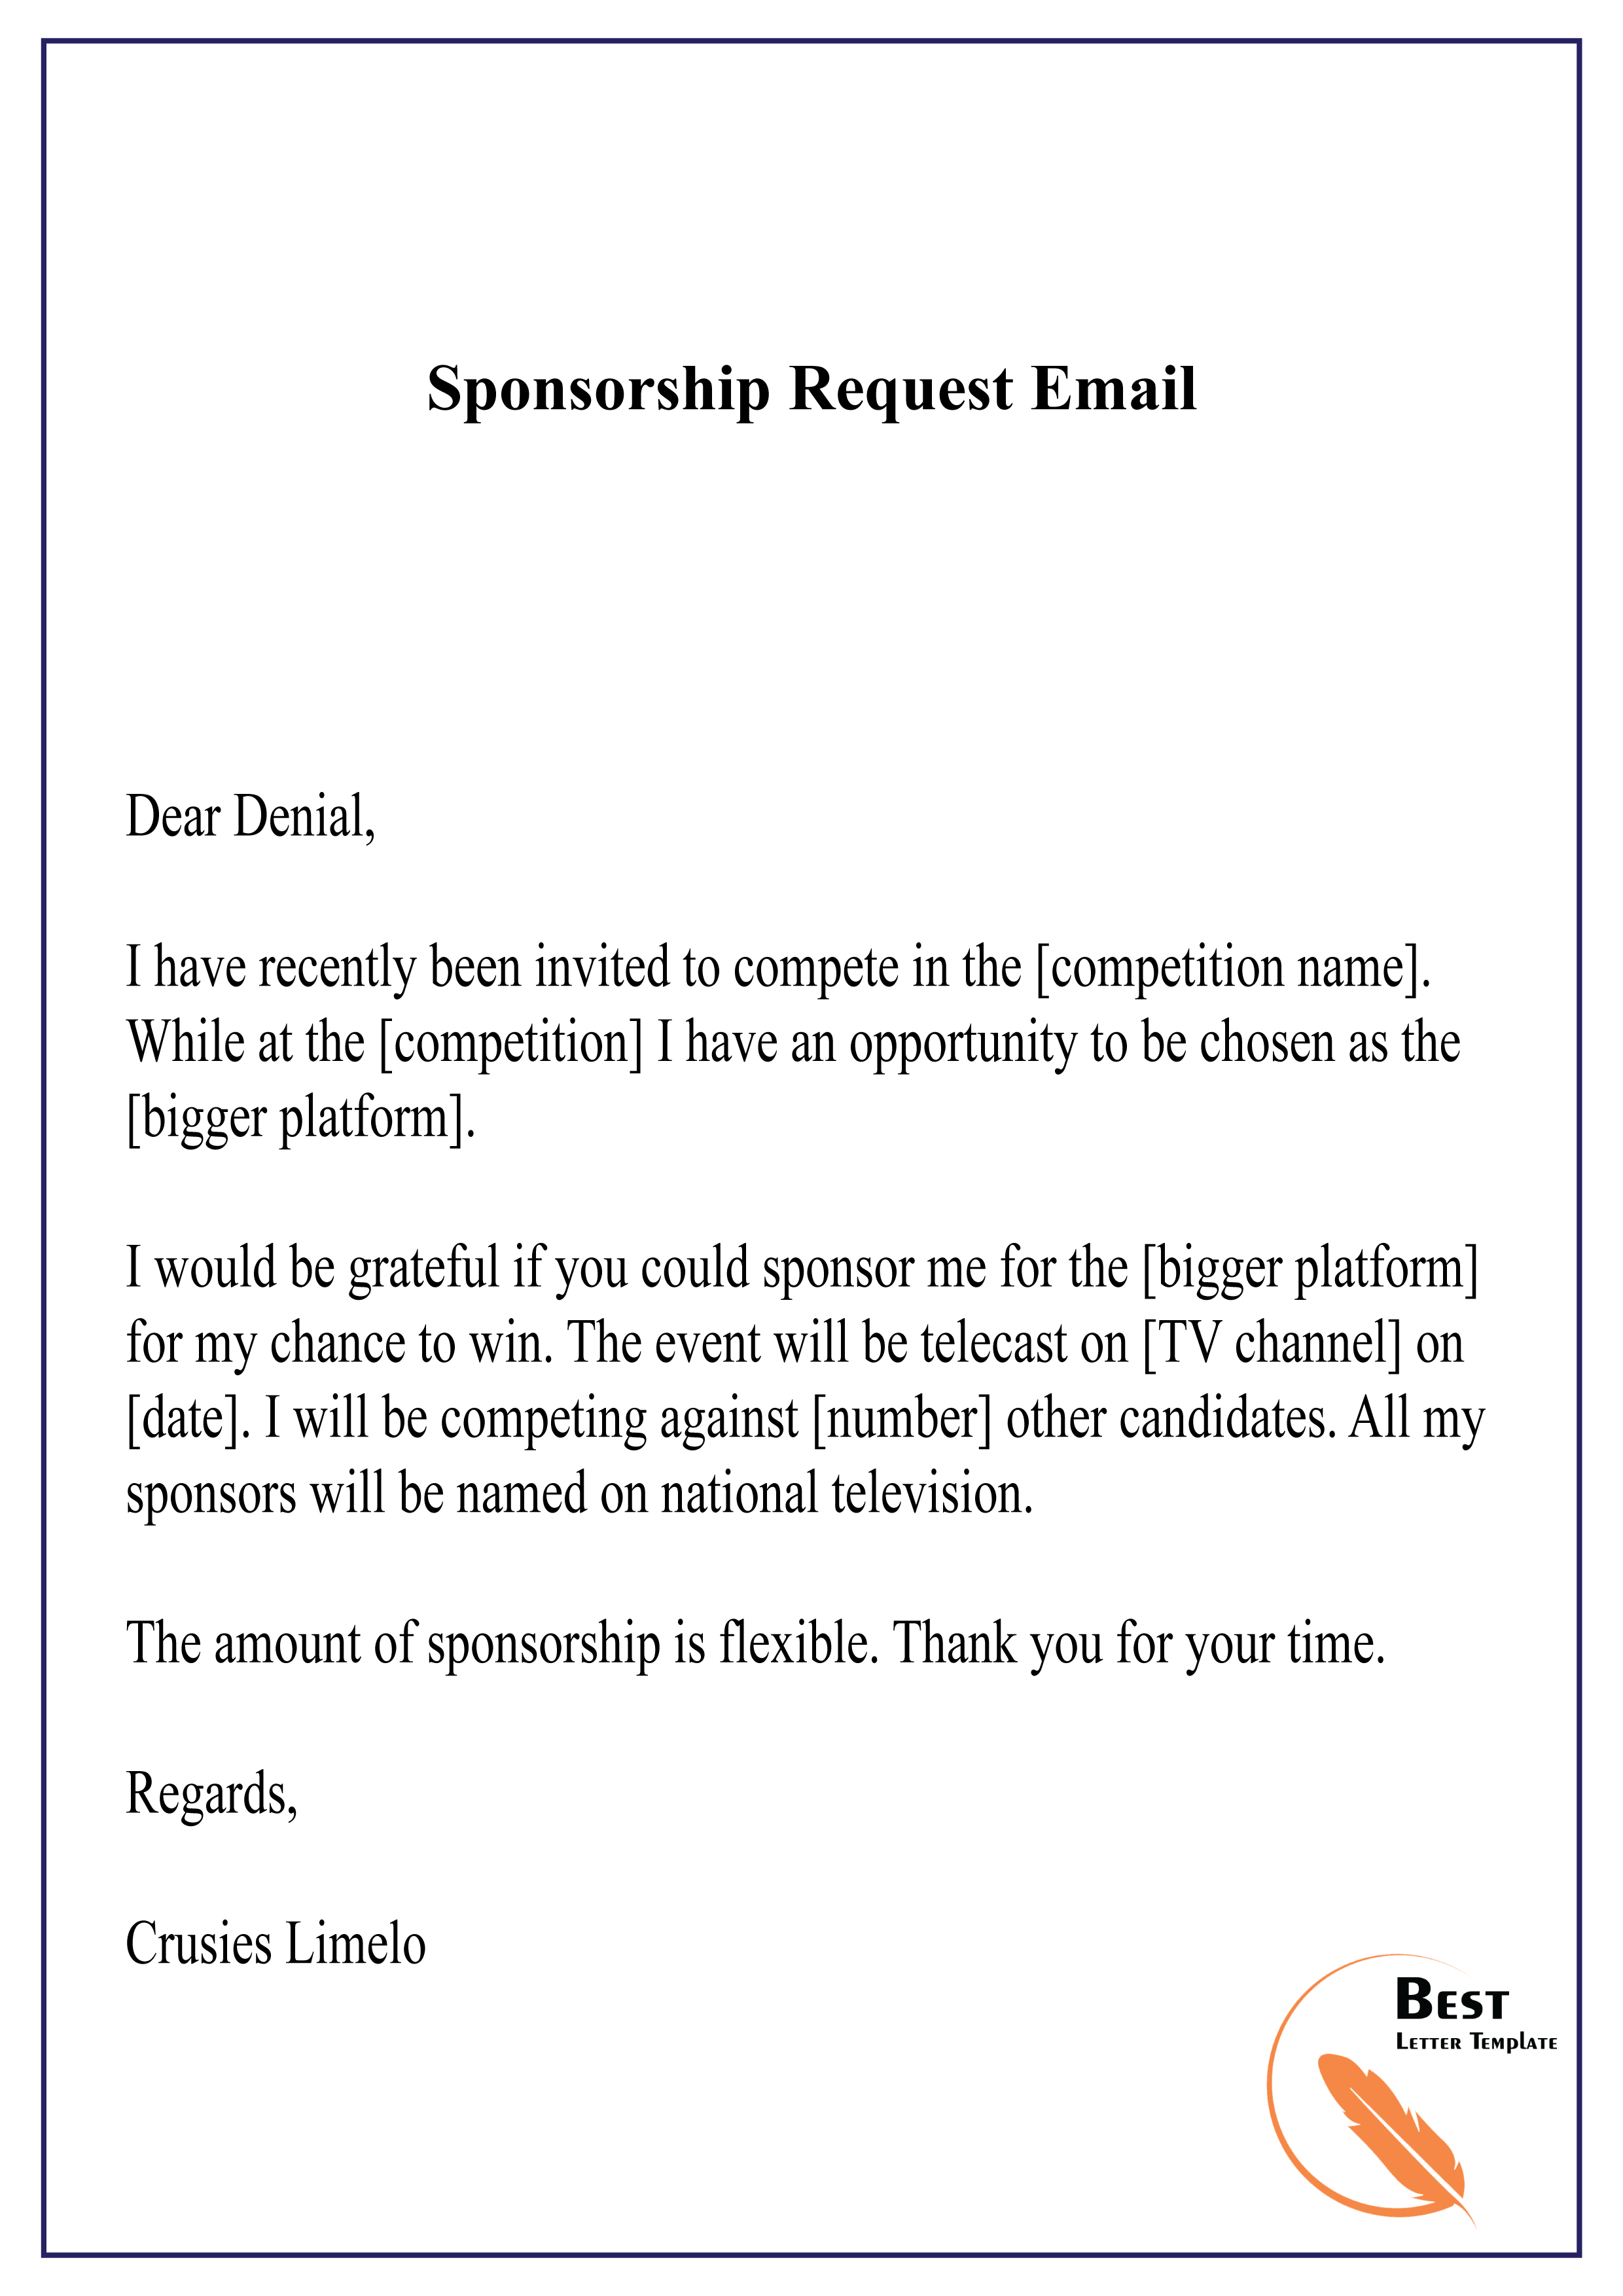 Sponsorship Request Email-01 – Best Letter Template